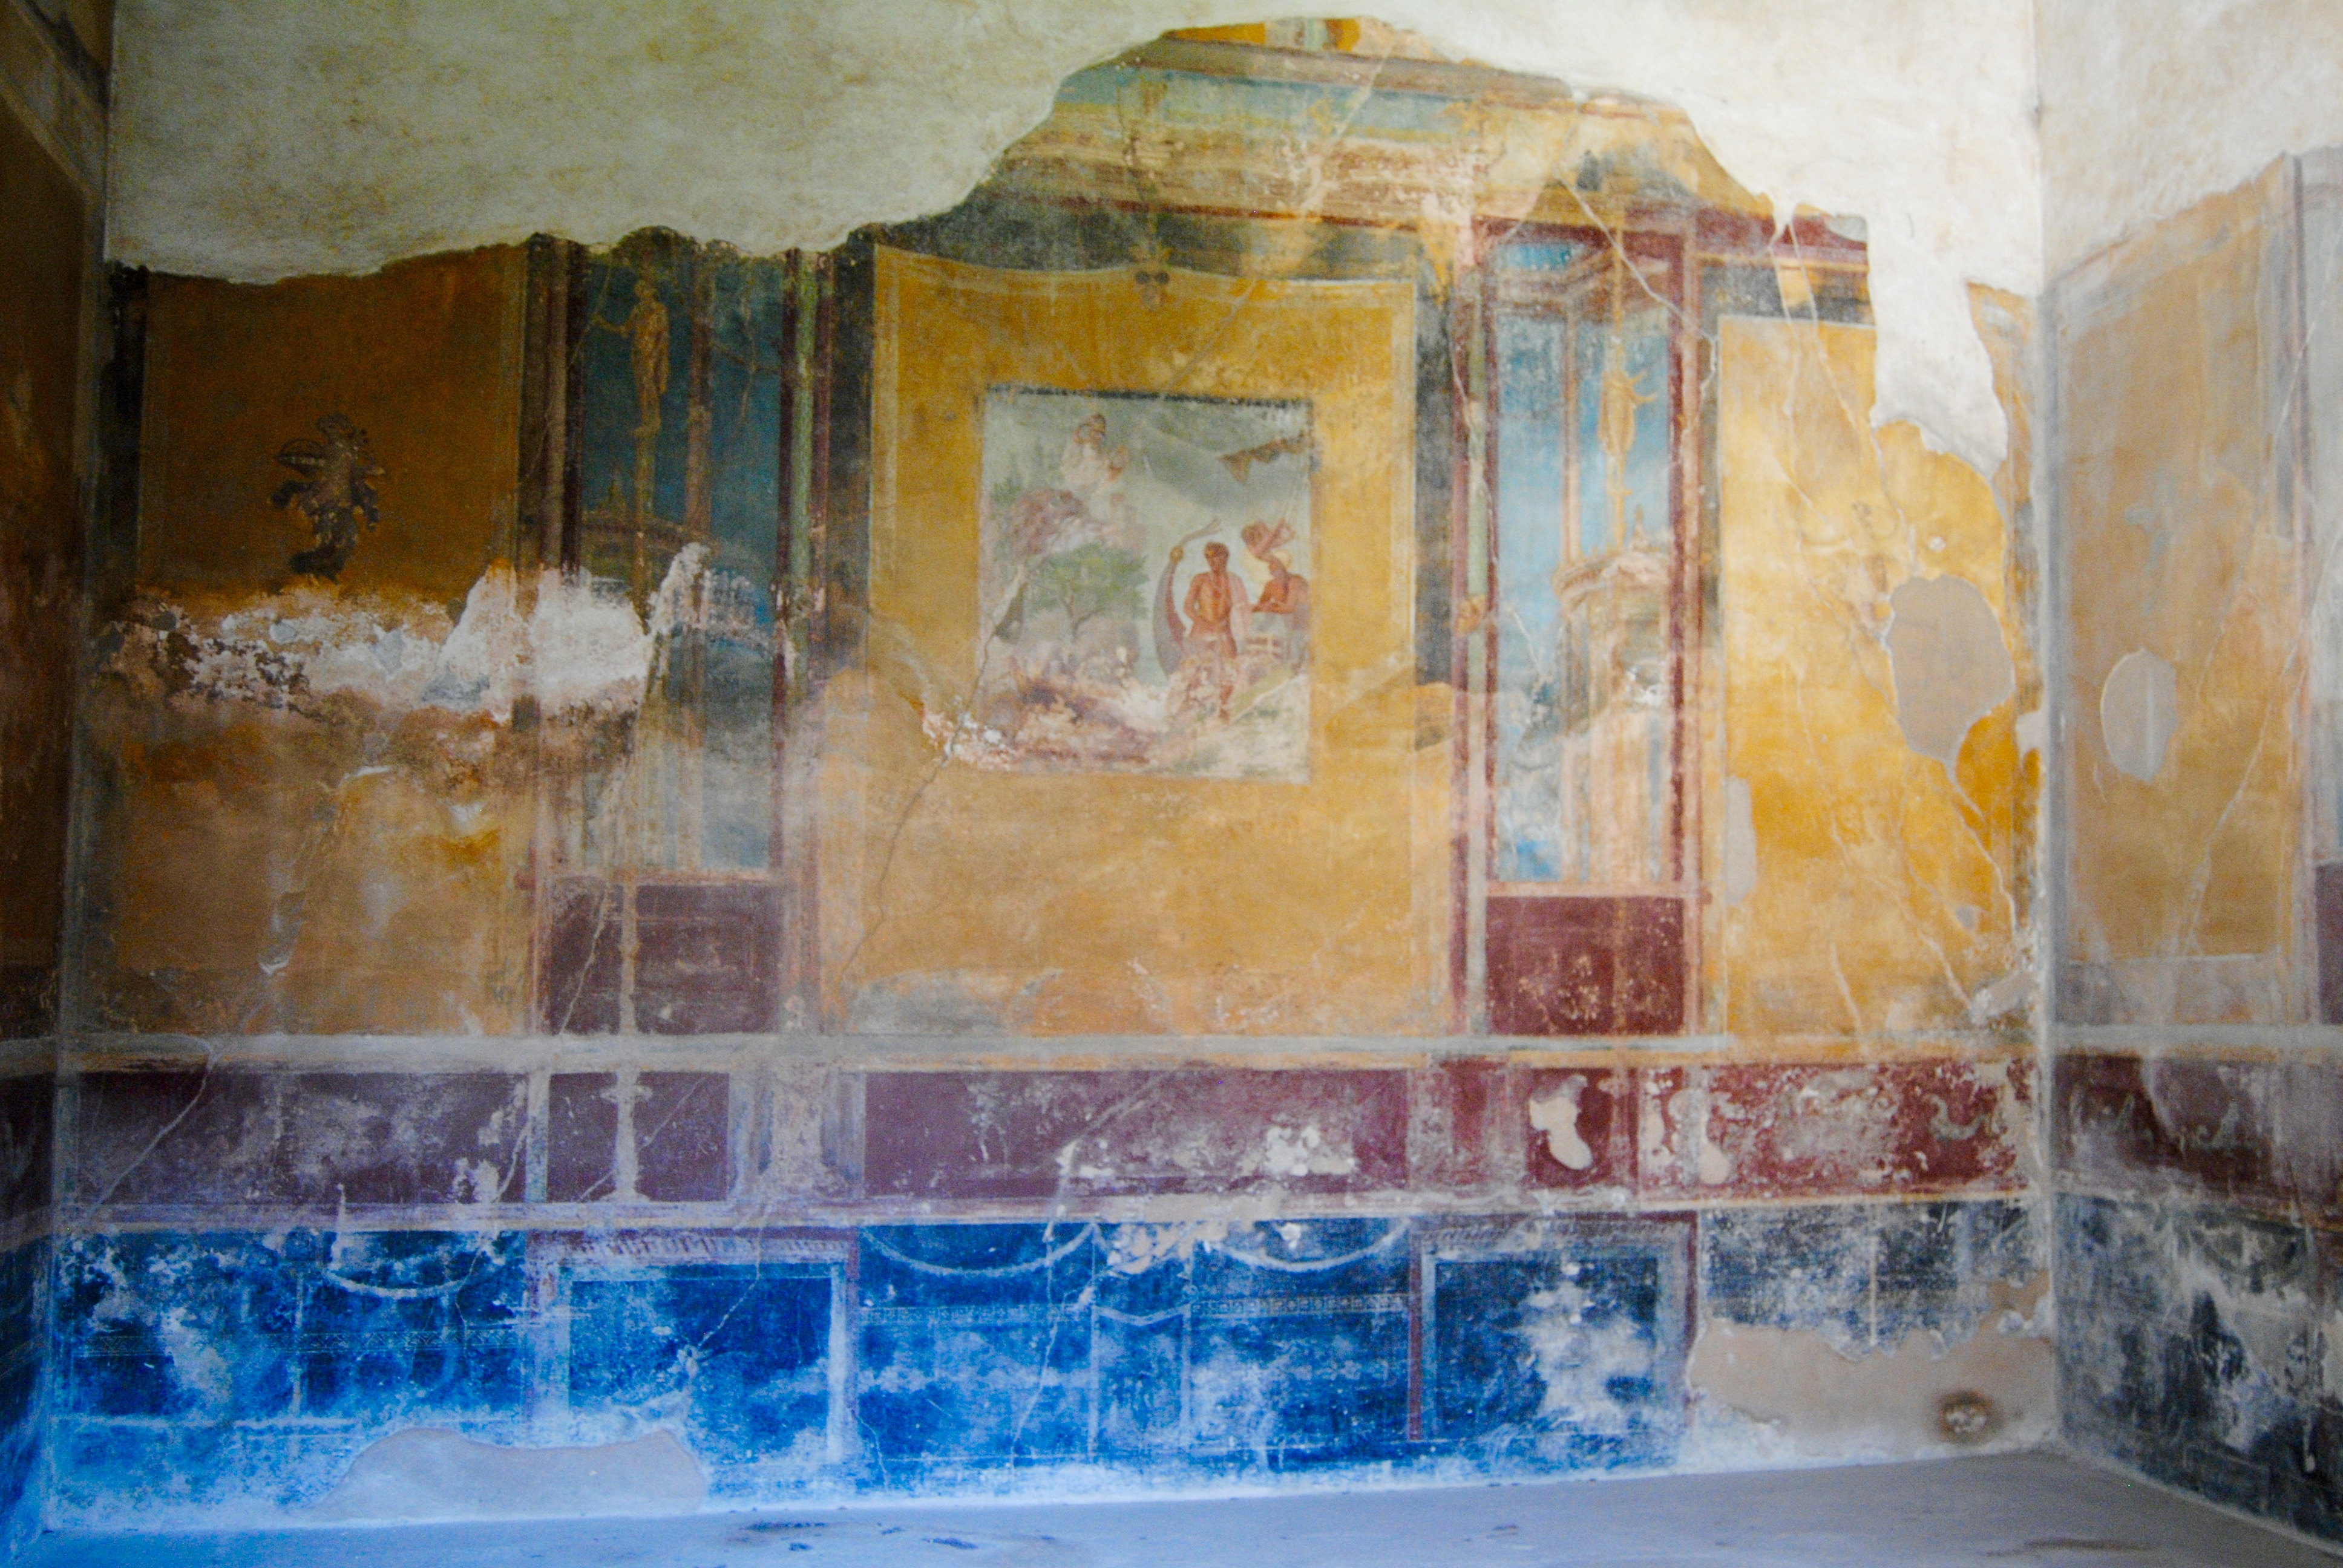 The frescoes inside one of the houses.